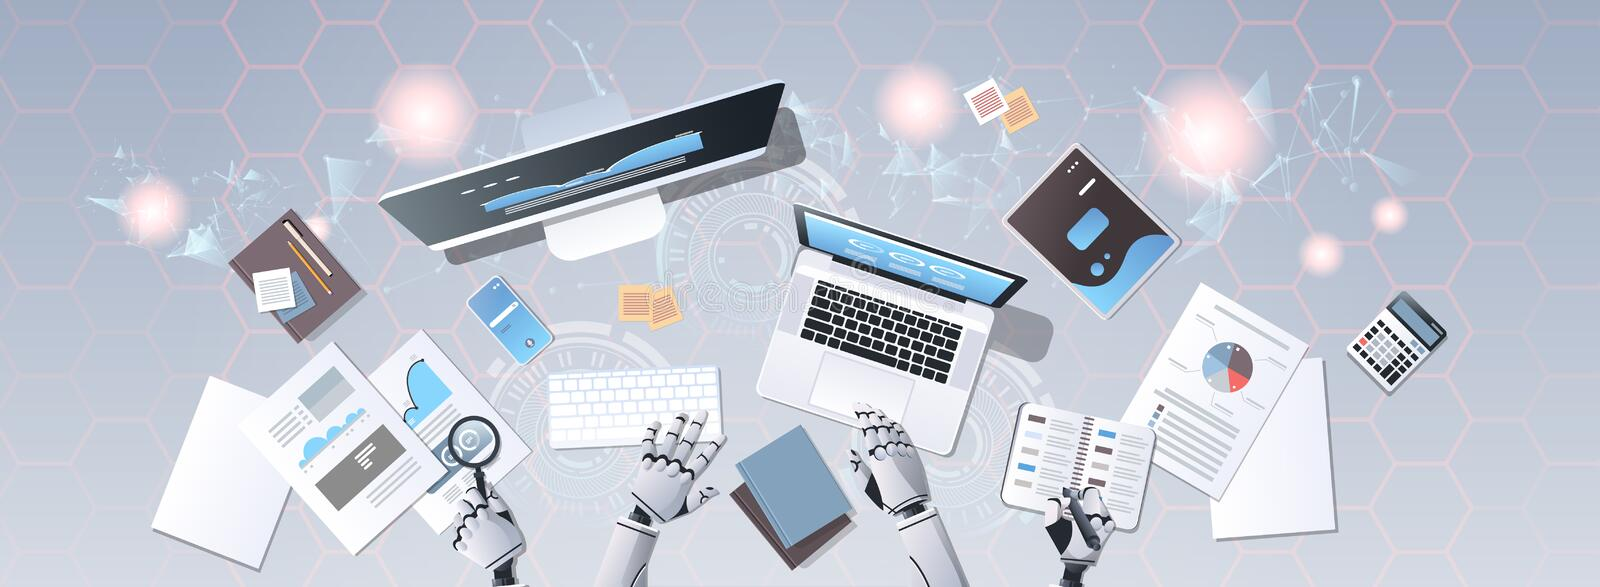 Robot hands using digital devices at workplace desk office stuff working process top angle view artificial intelligence royalty free illustration